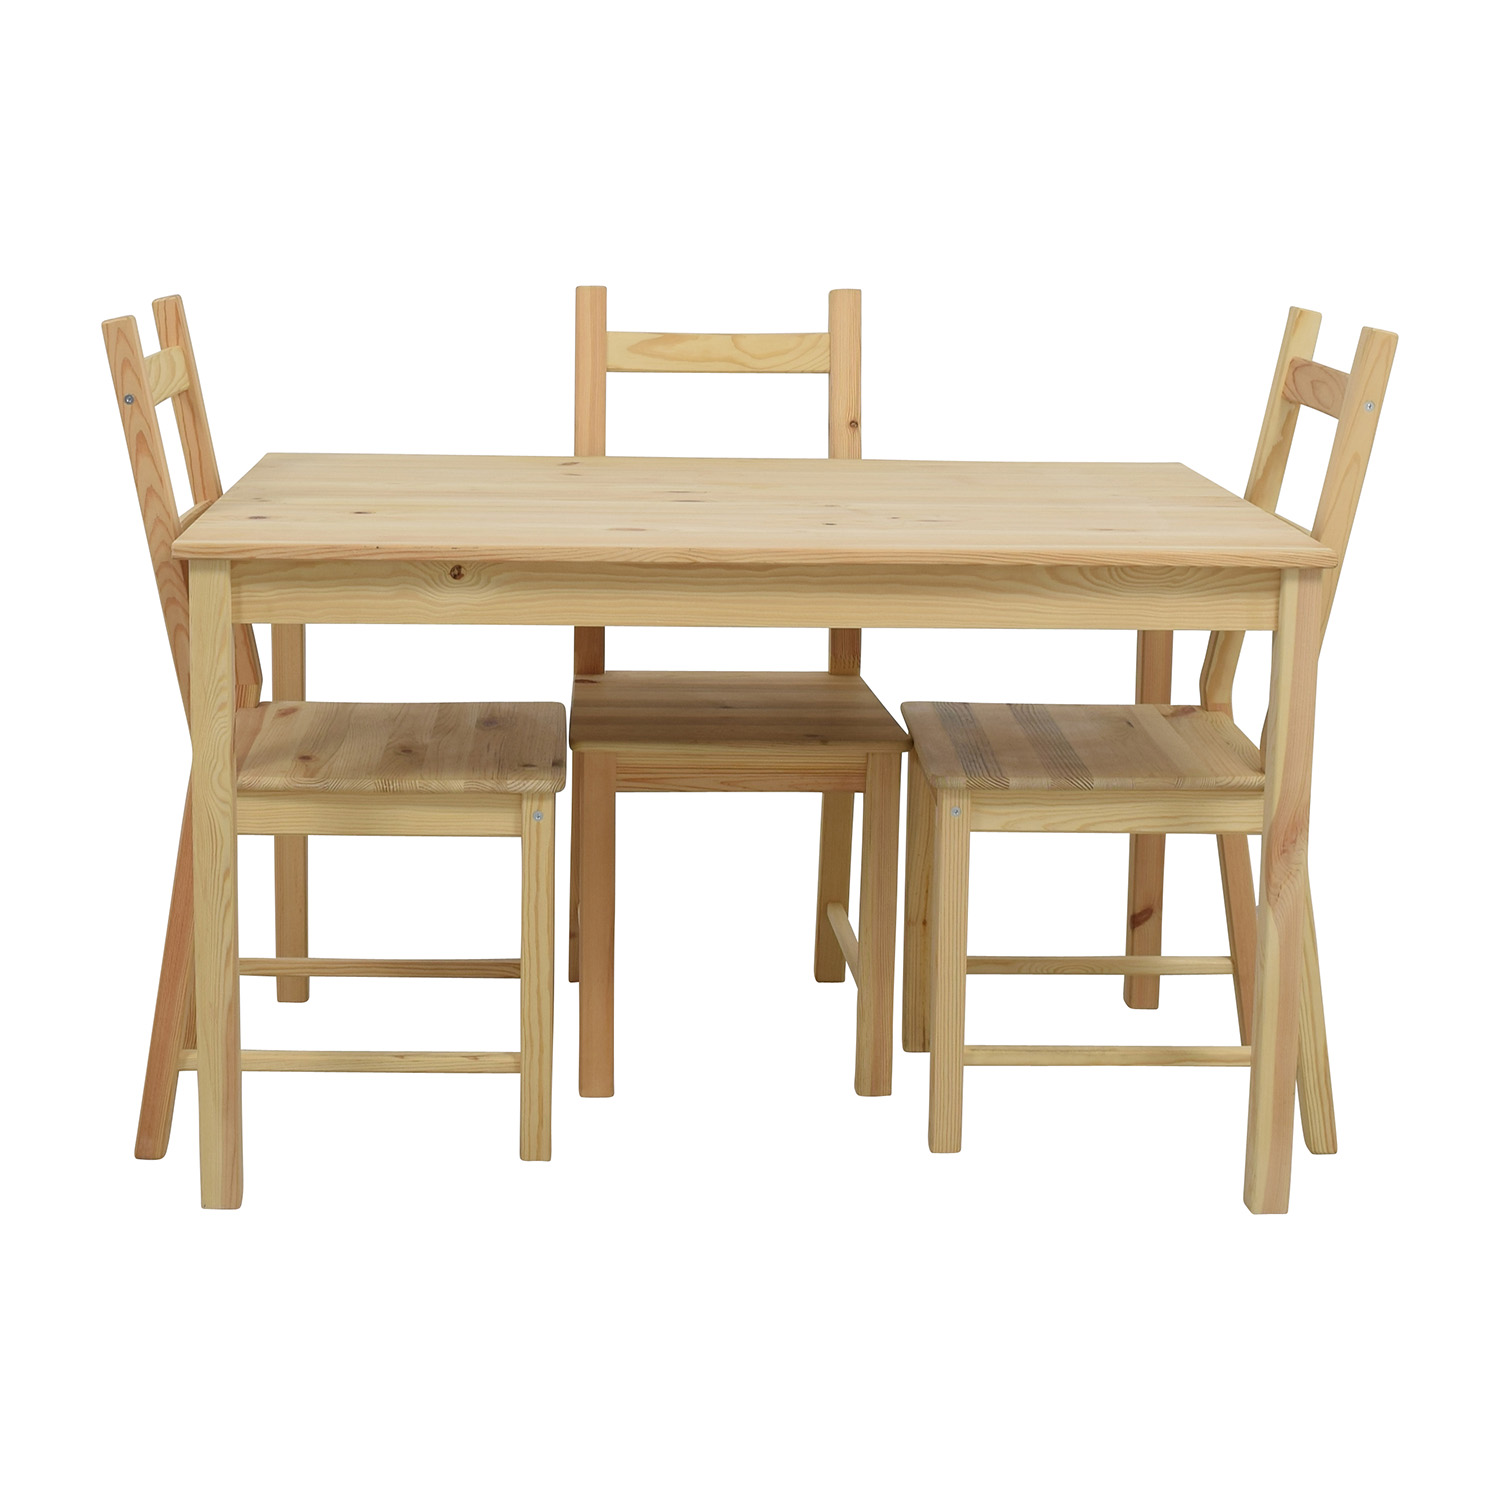 pine kitchen chairs for sale best stadium chair ikea table image to u